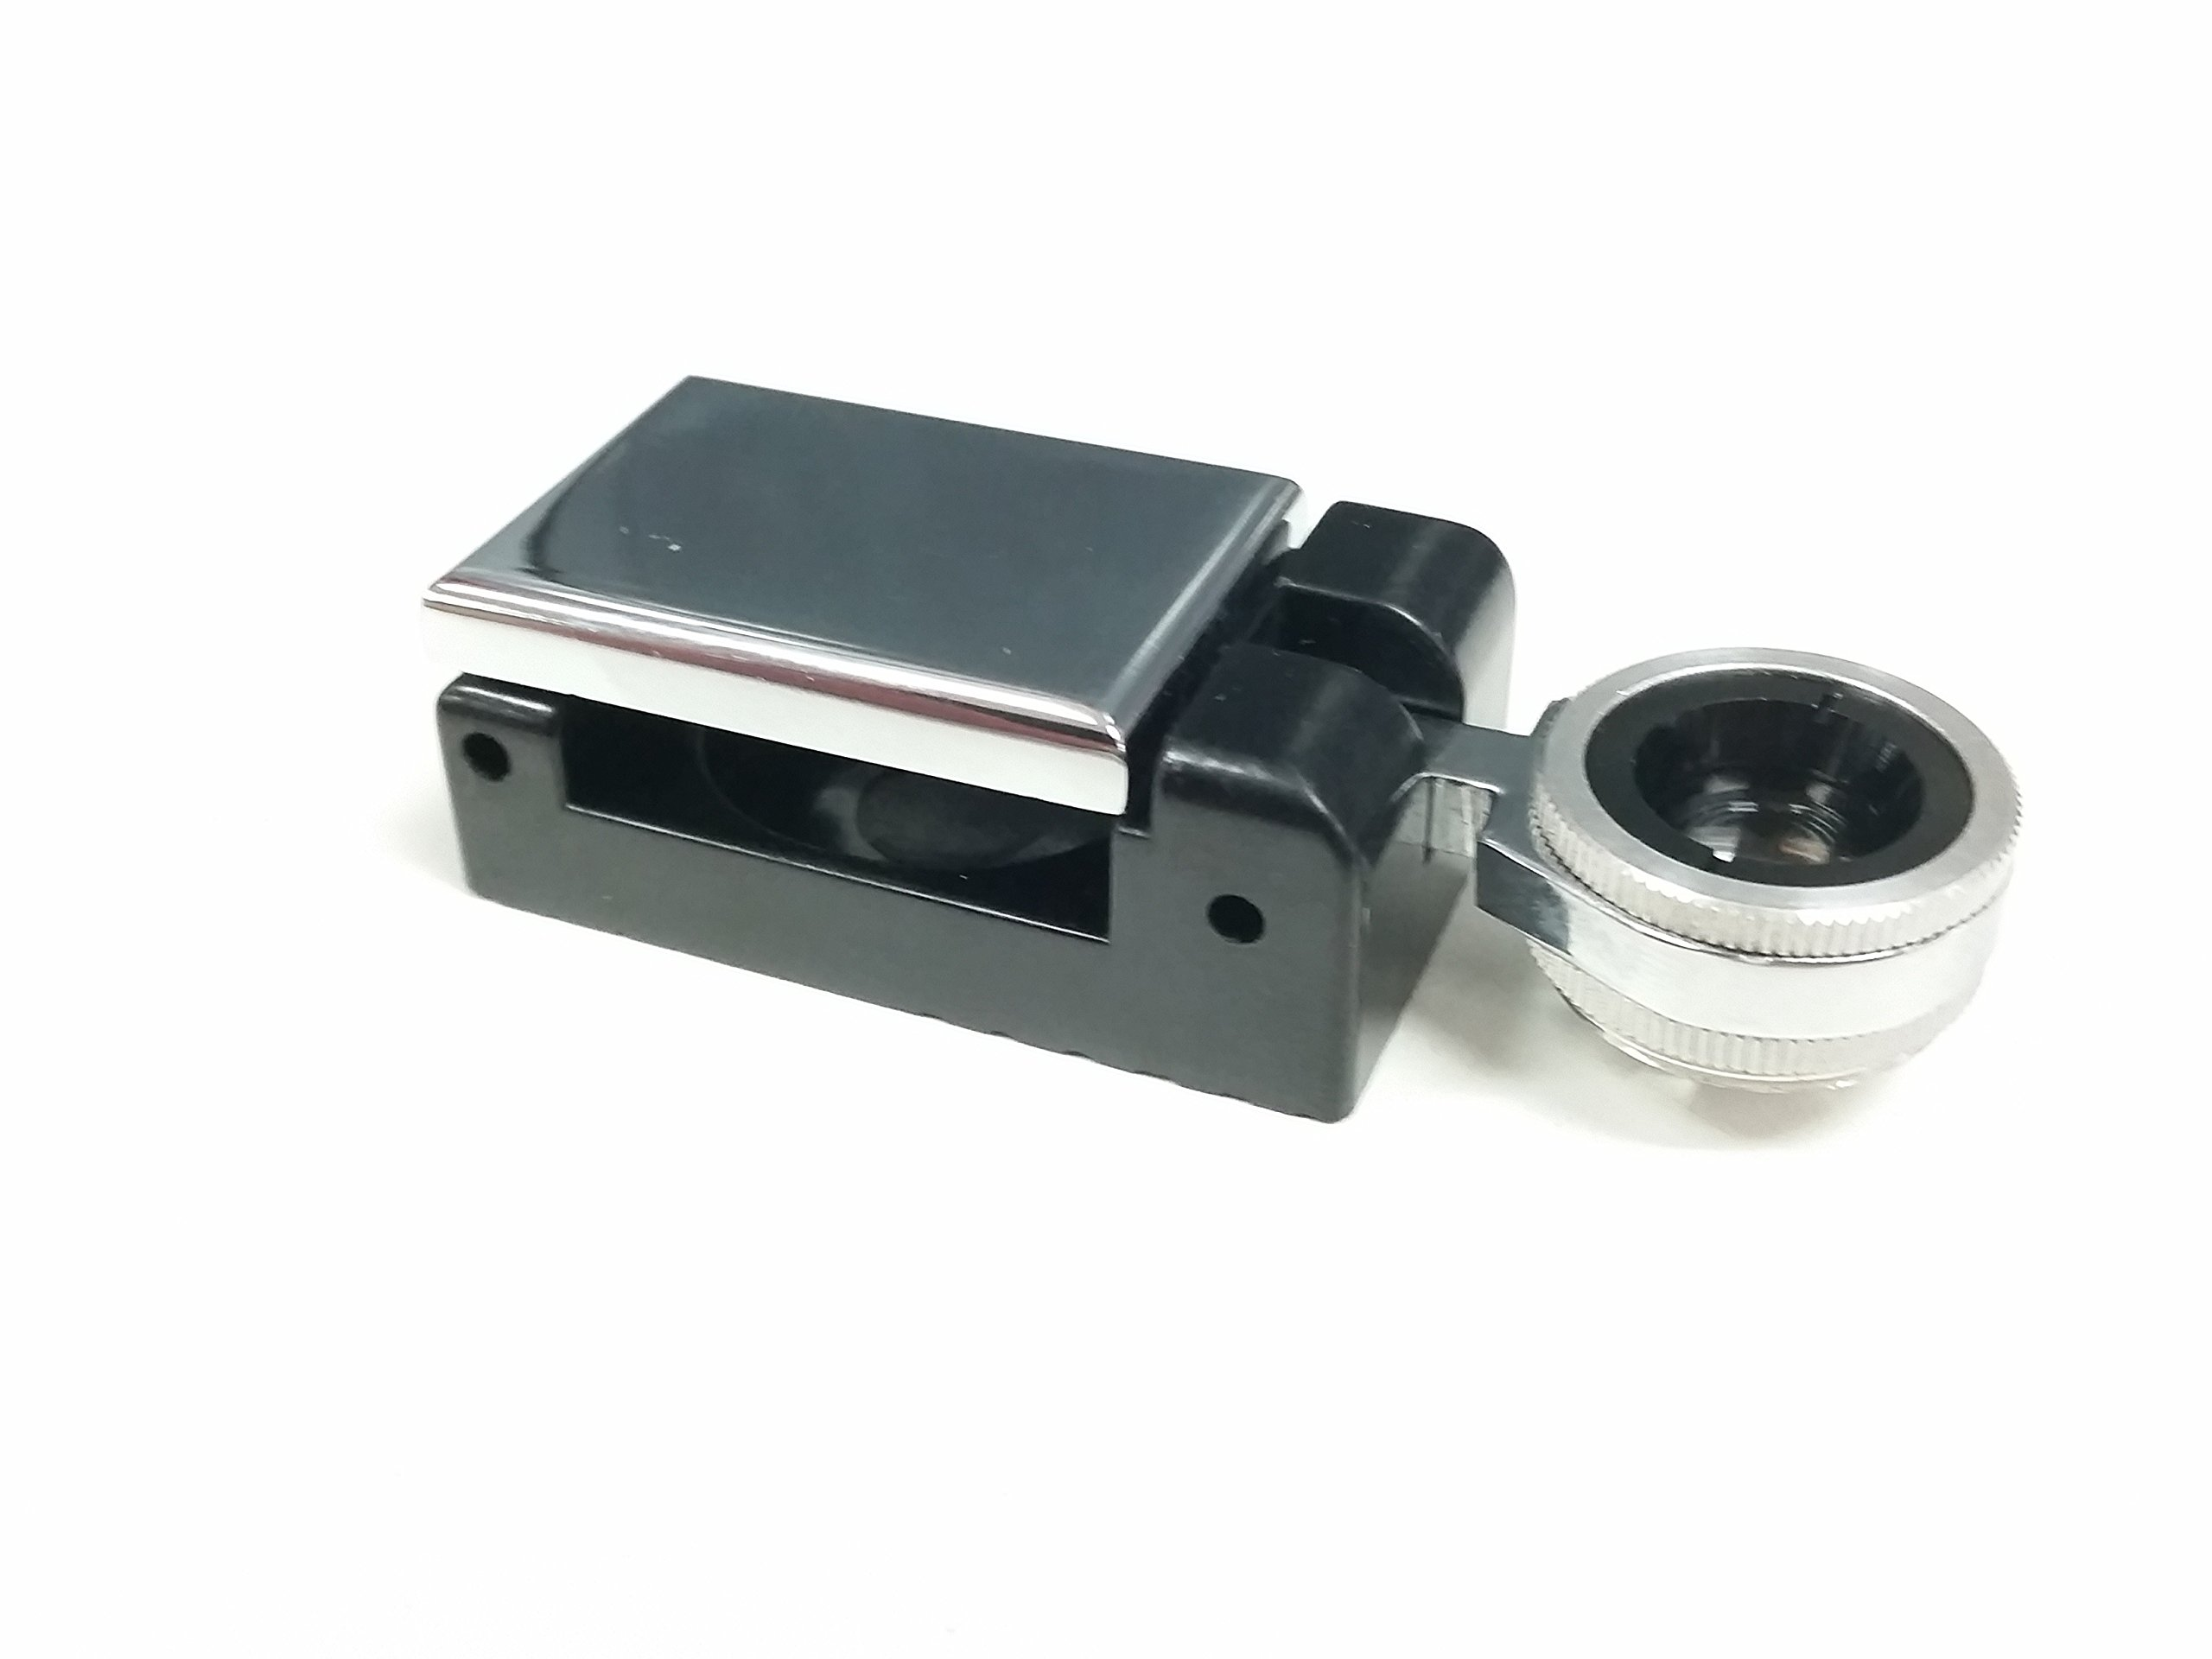 20X / 20 Power PRINTER'S FOLD-Out Magnifier/LOUPE / Loup by Caprock